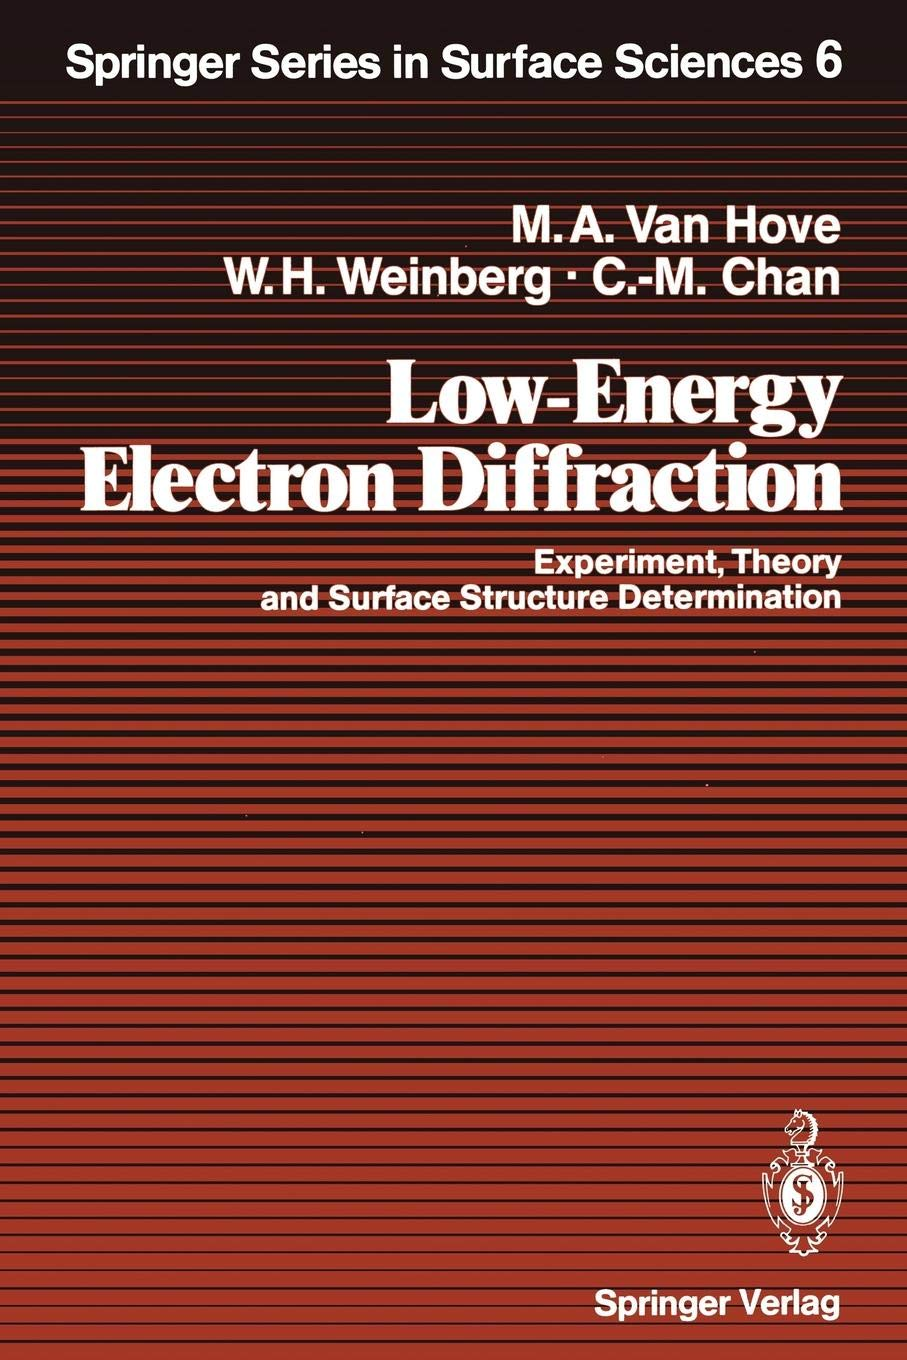 Low-Energy Electron Diffraction: Experiment Theory and Surface Structure Determination (Springer Series in Surface Sciences (6) Band 6)